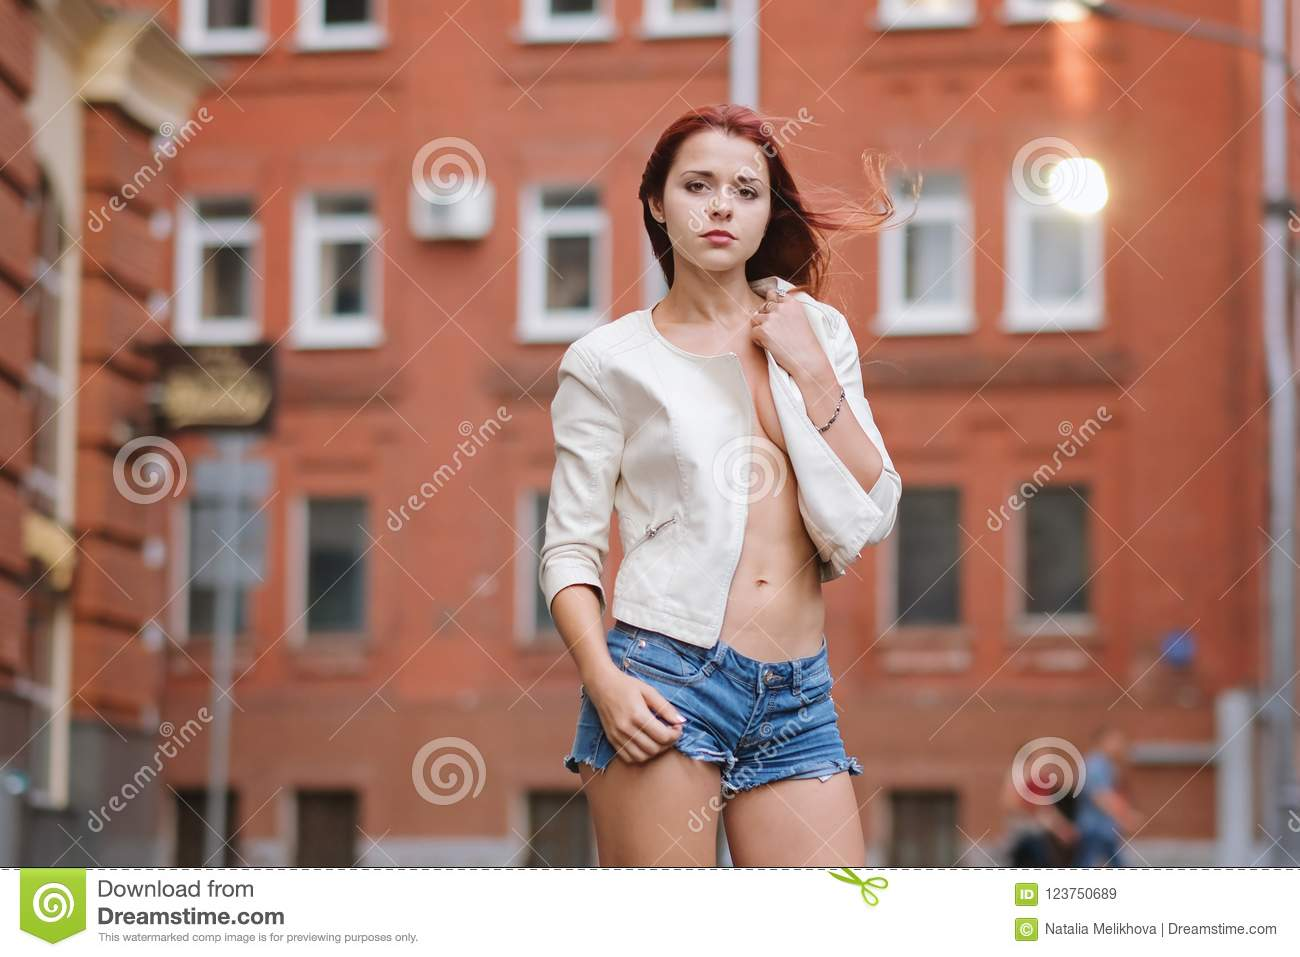 Hot redhair woman in the city. Nude girl. Fashion art photo.